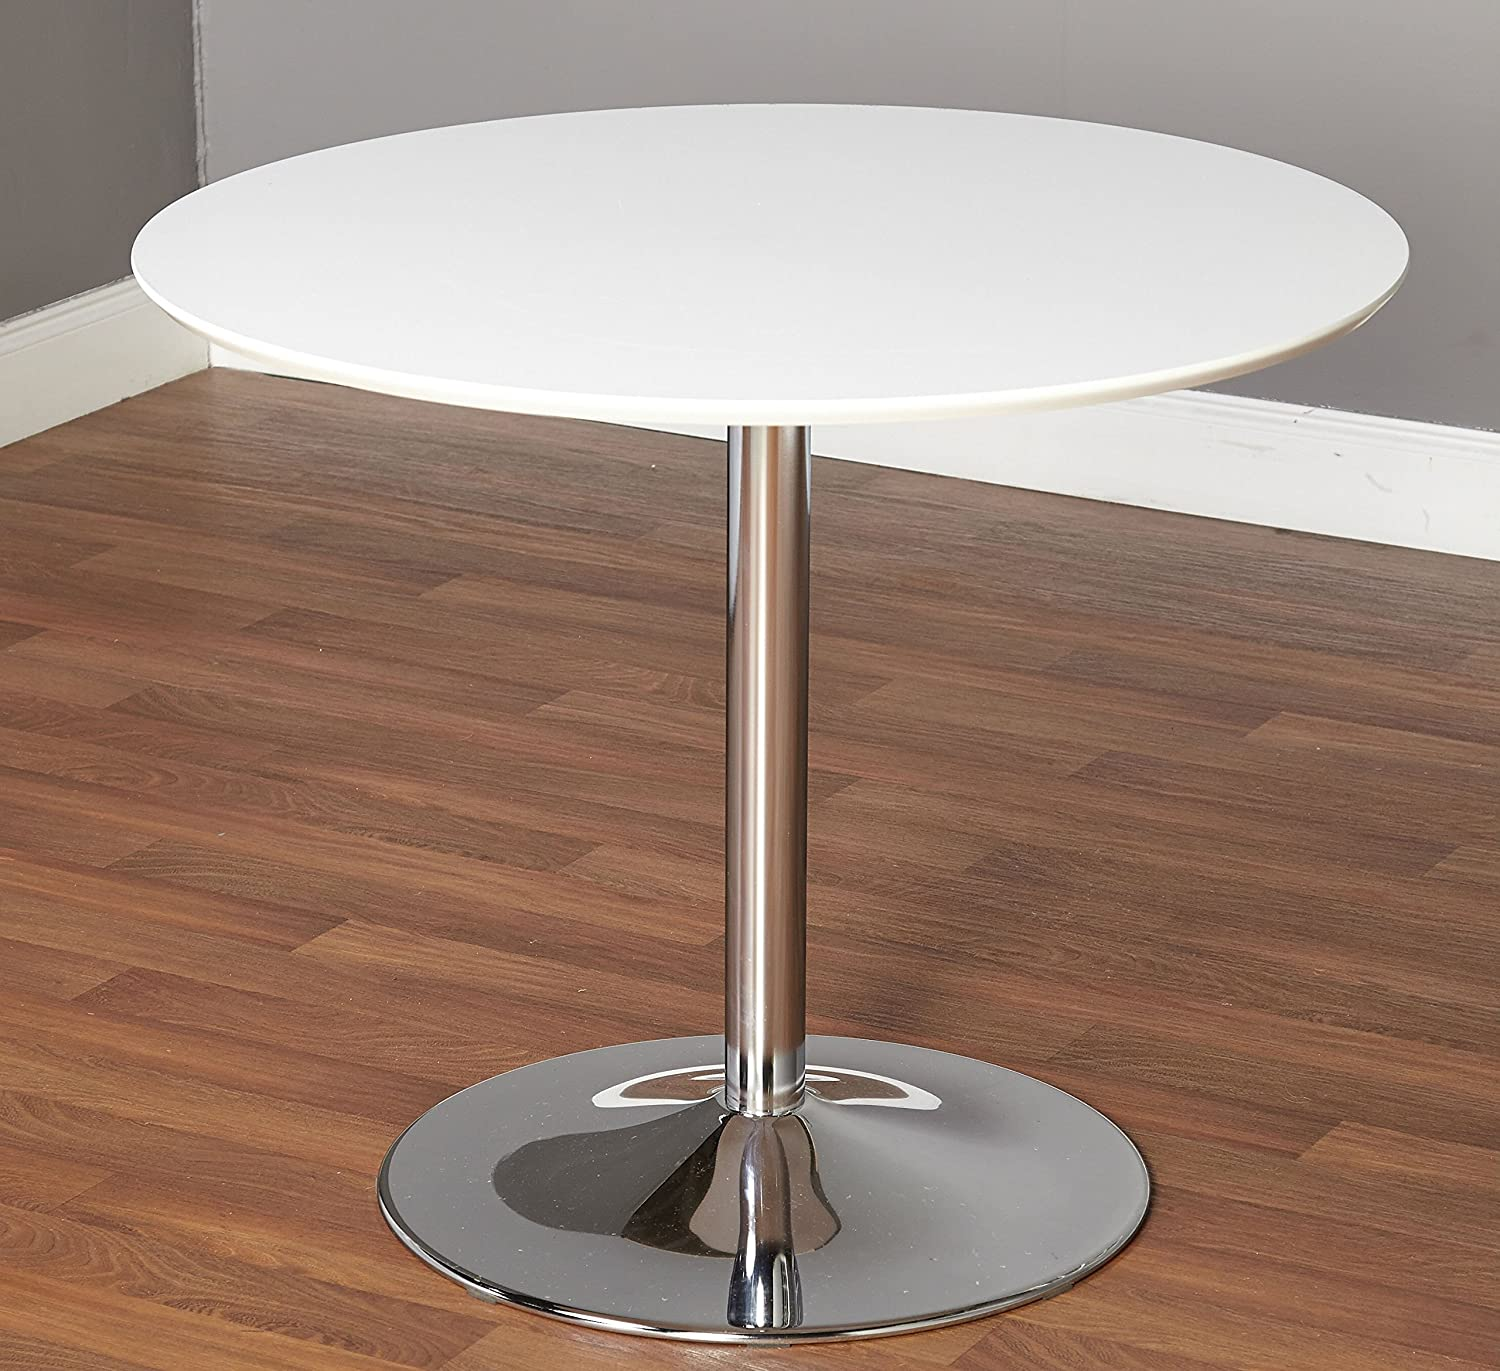 This Minimalist Dining Table - has a Compact Modern Design - with a White Round laminated table top and chrome base. Seats 4 -